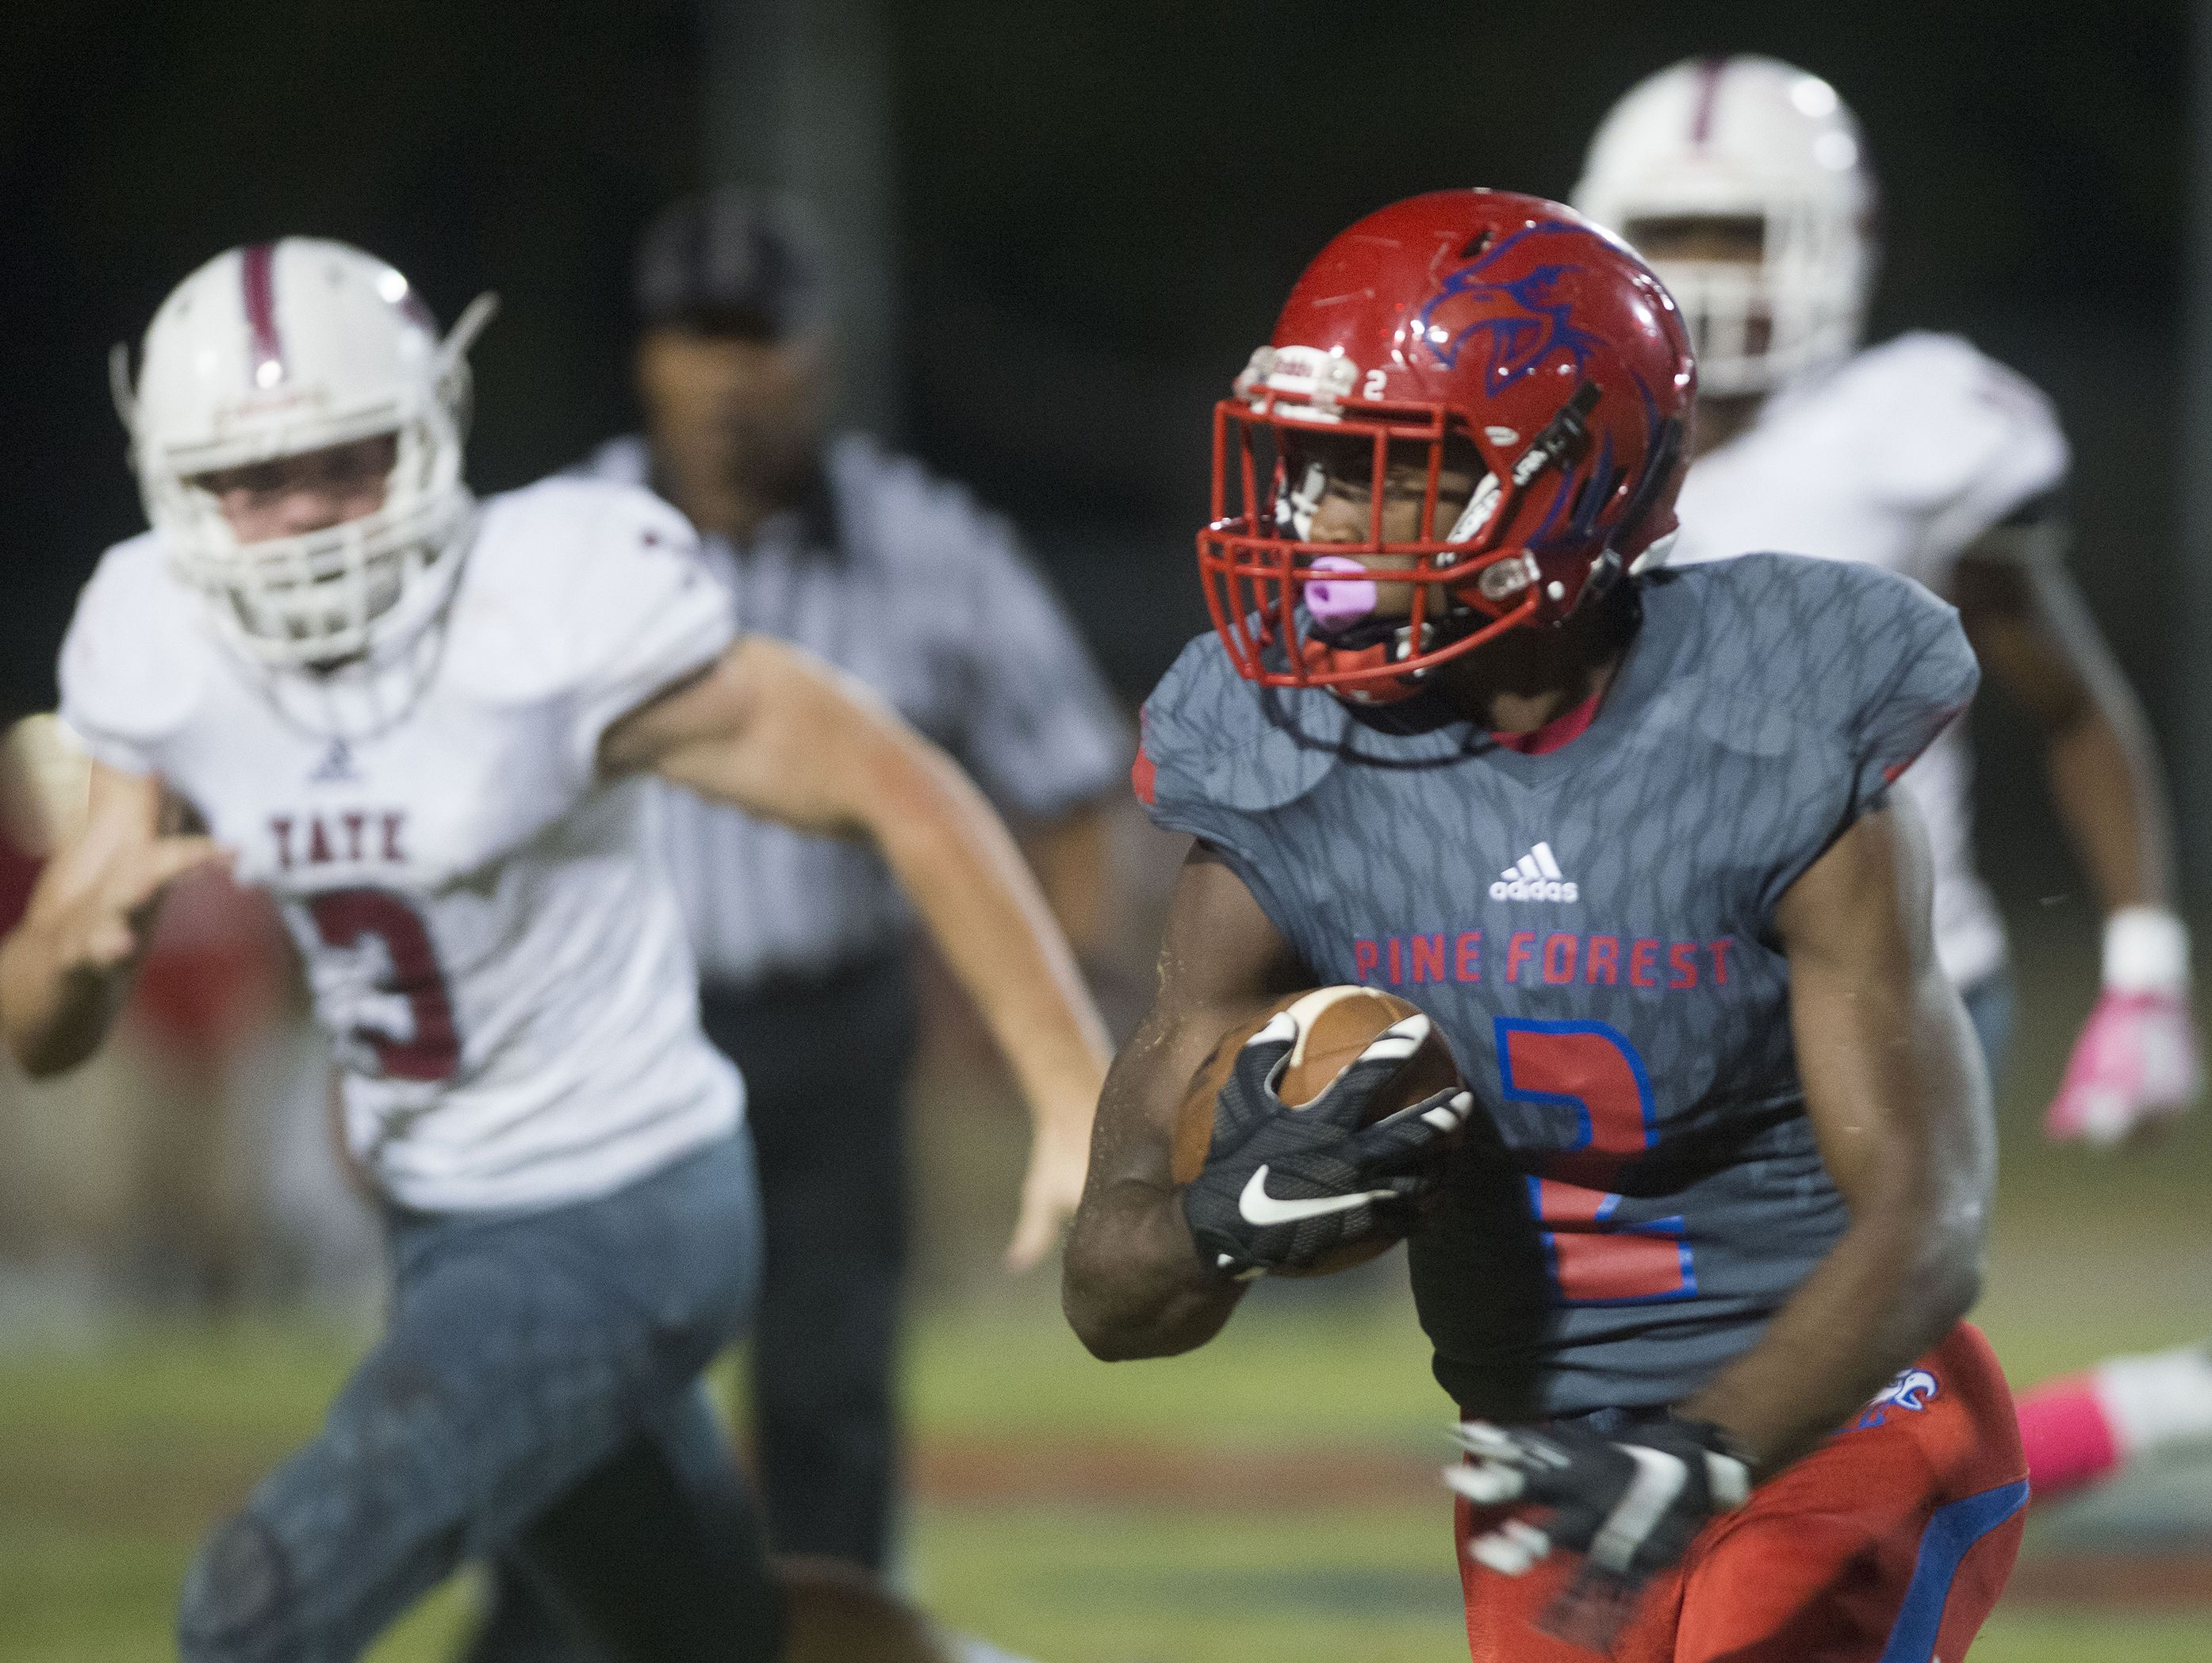 Pine Forest High School running back, Jaden Gardner, (No. 2) turns up field for a big gain against as the Tate High School defense gives chase during a winner take all district game Friday night.